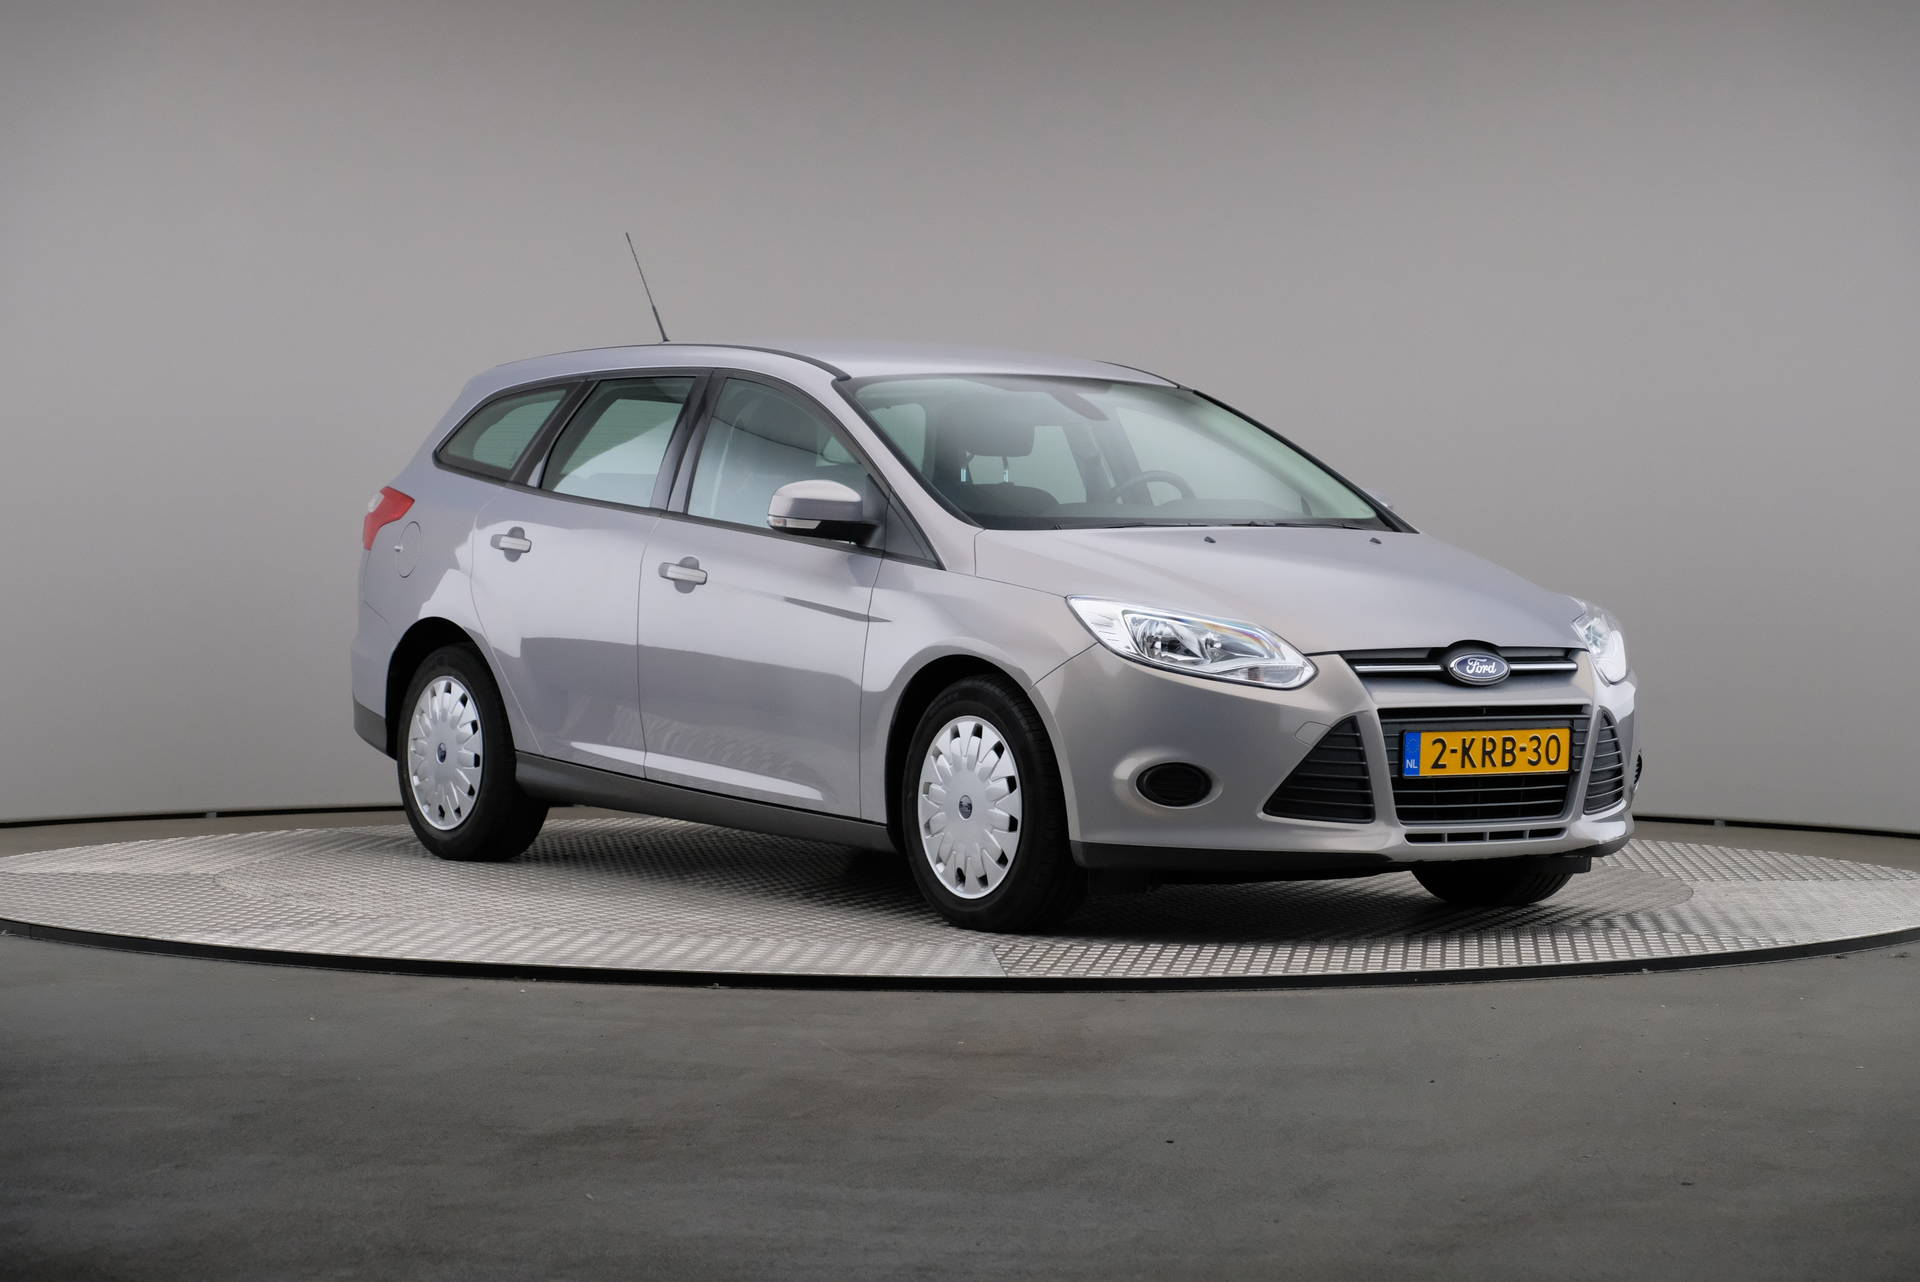 Ford Focus Wagon 1.6 TDCi ECOnetic Lease Trend, Navigatie, 360-image29